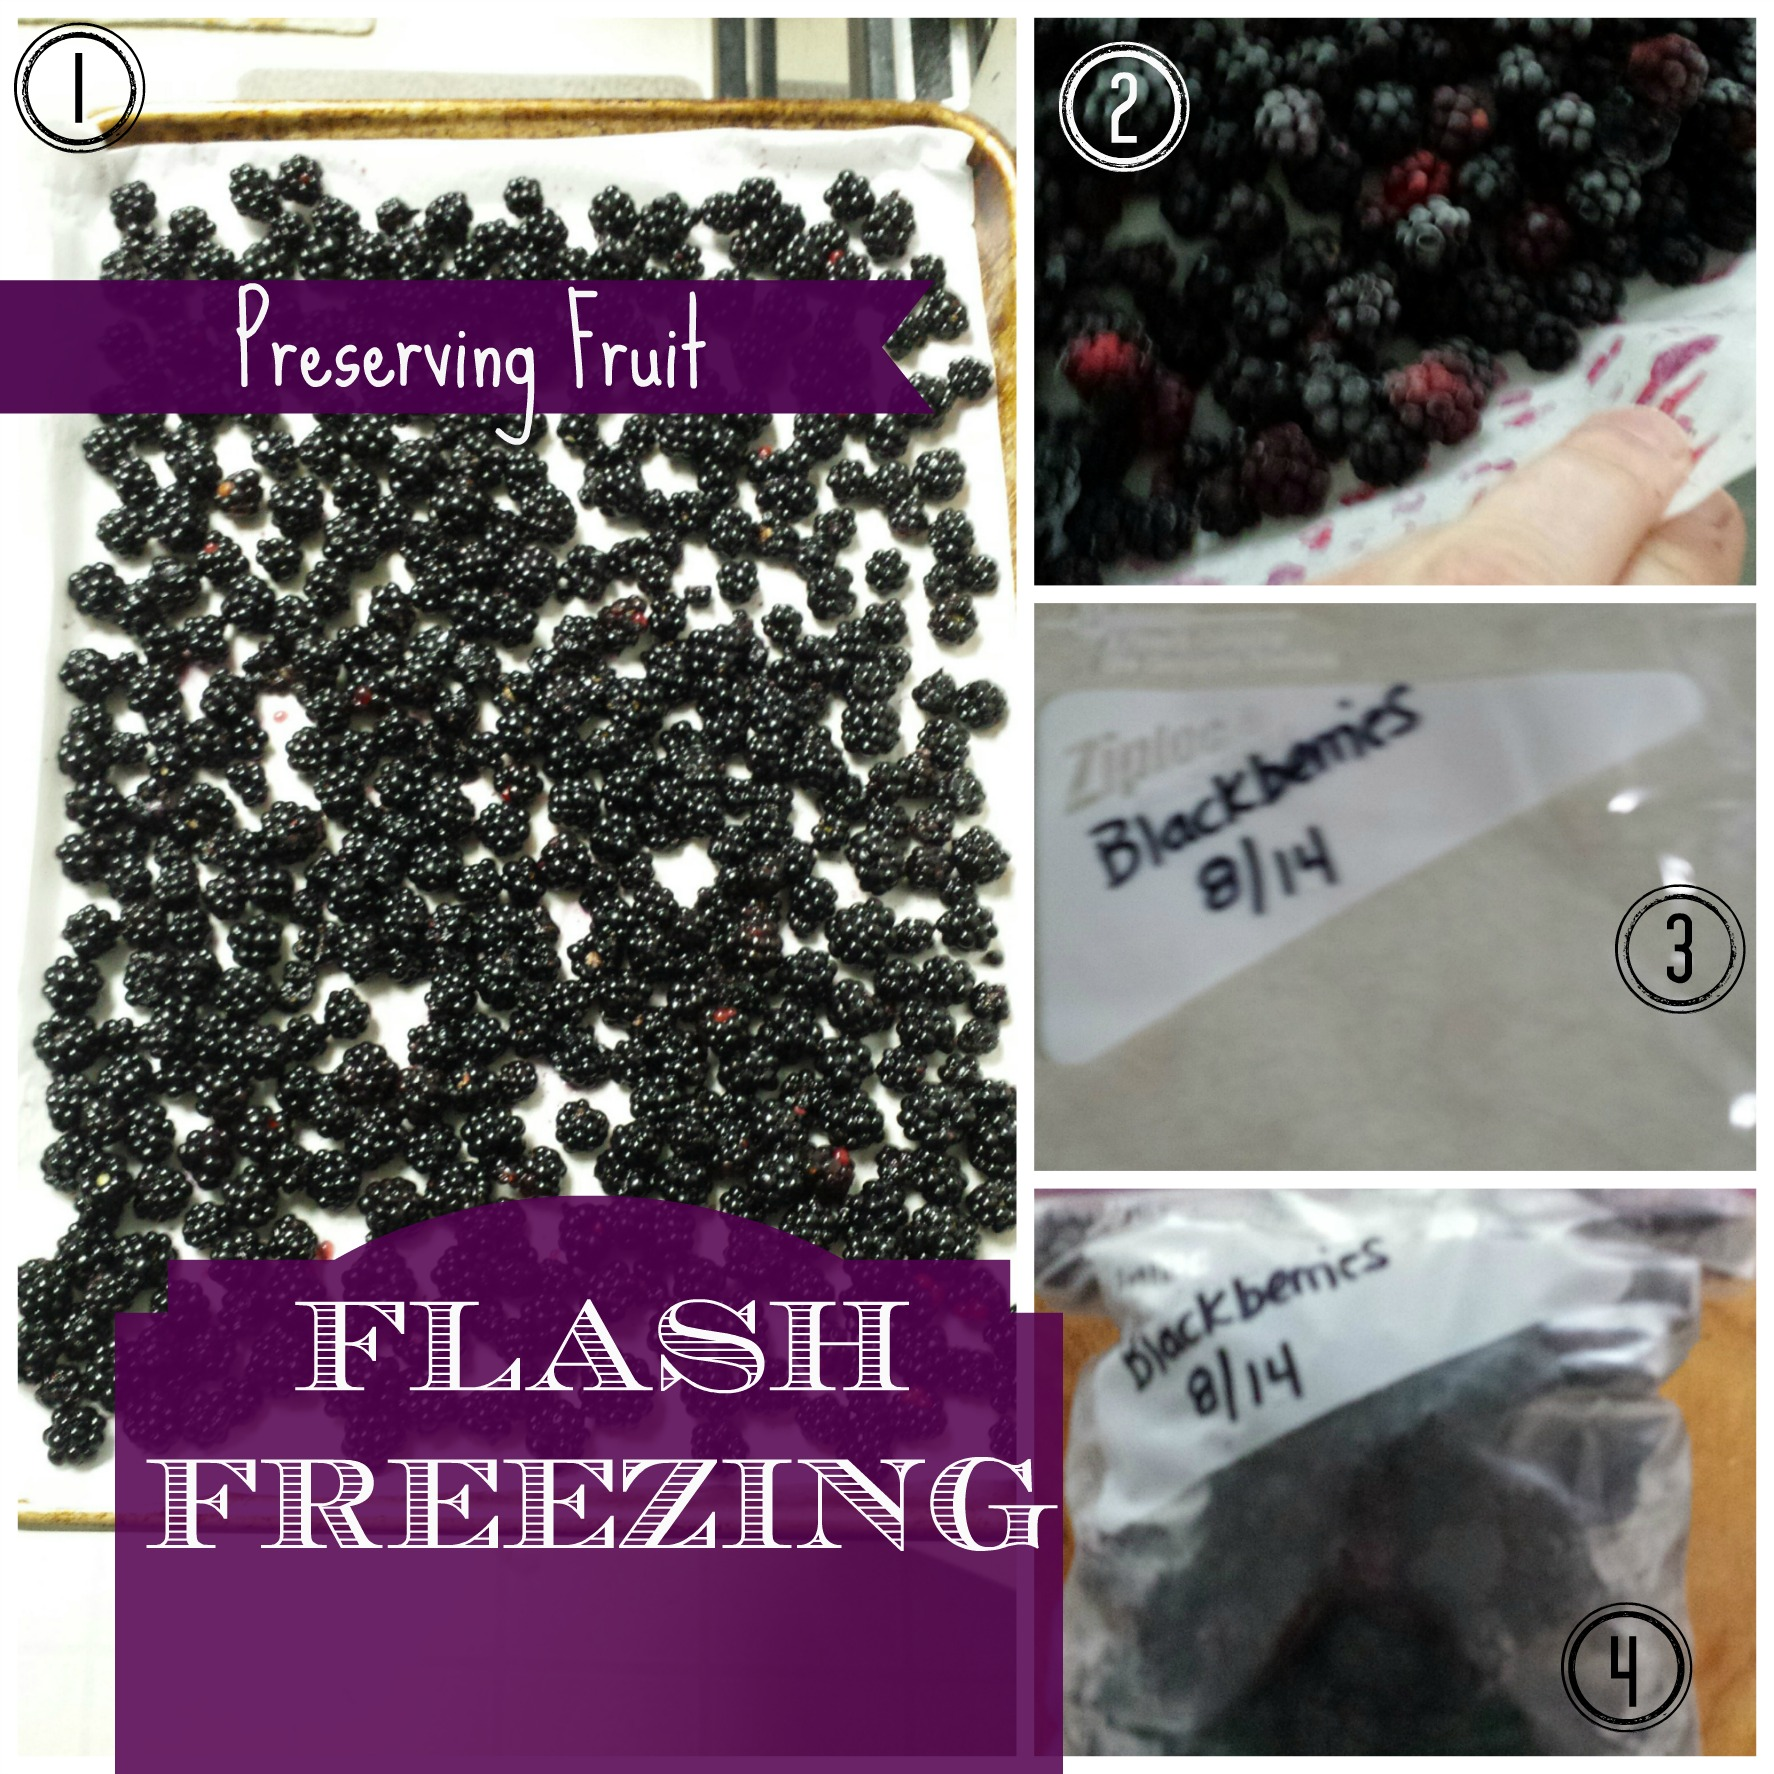 PRESERVING YOUR FRUIT BY FLASH FREEZING